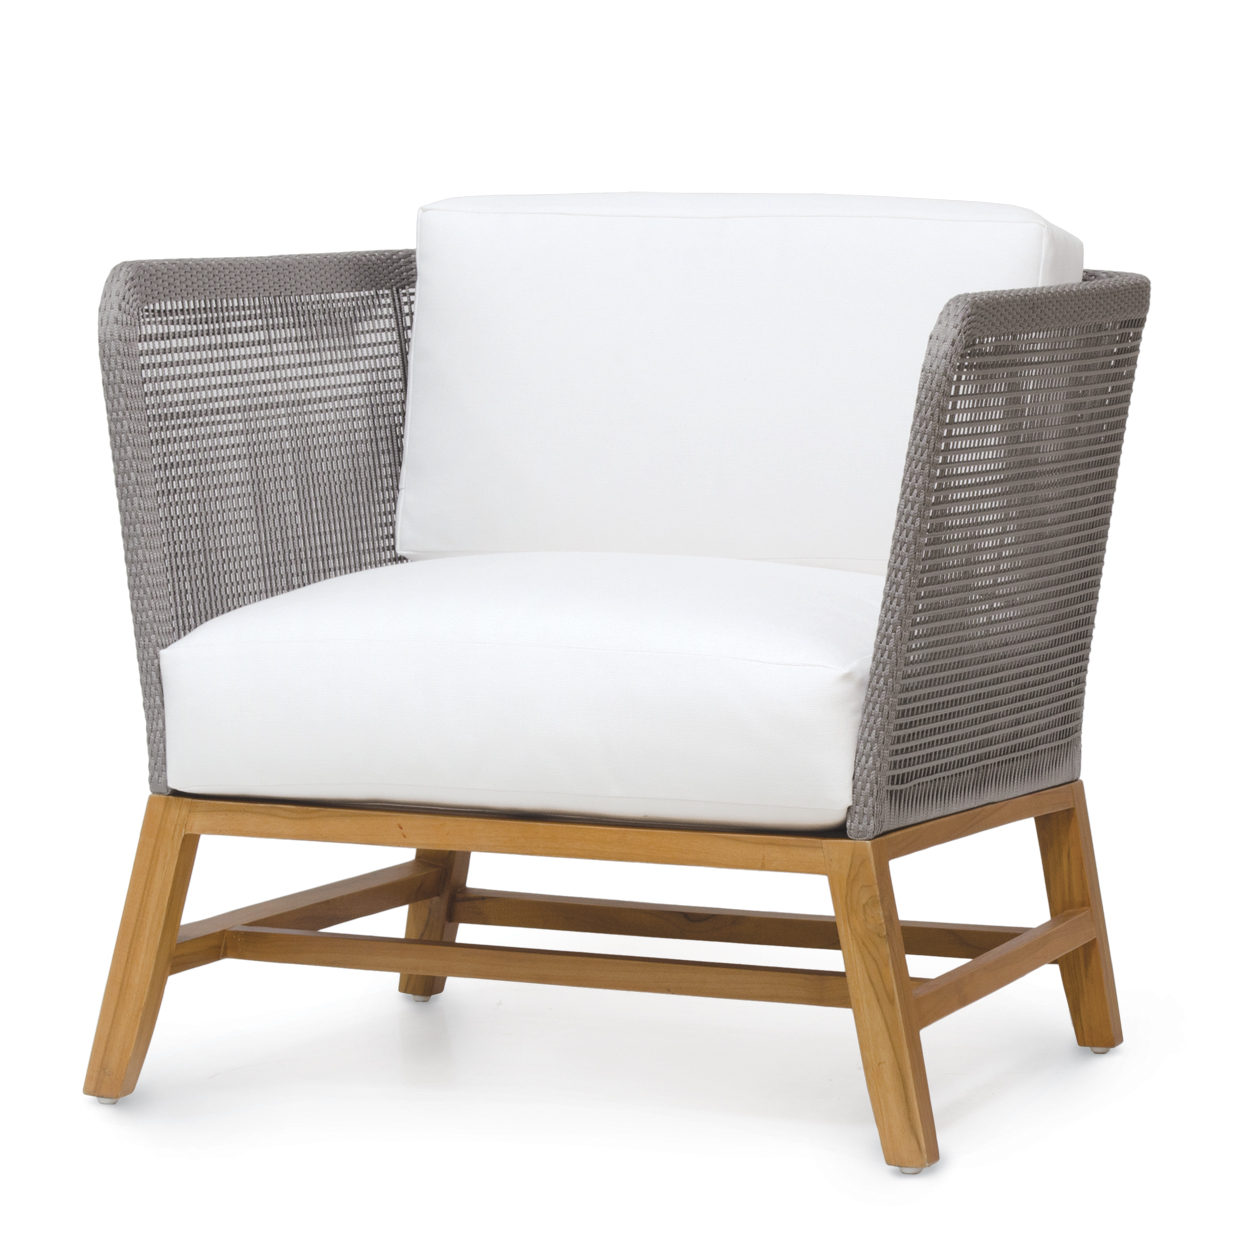 Superieur Avila Outdoor Lounge Chair